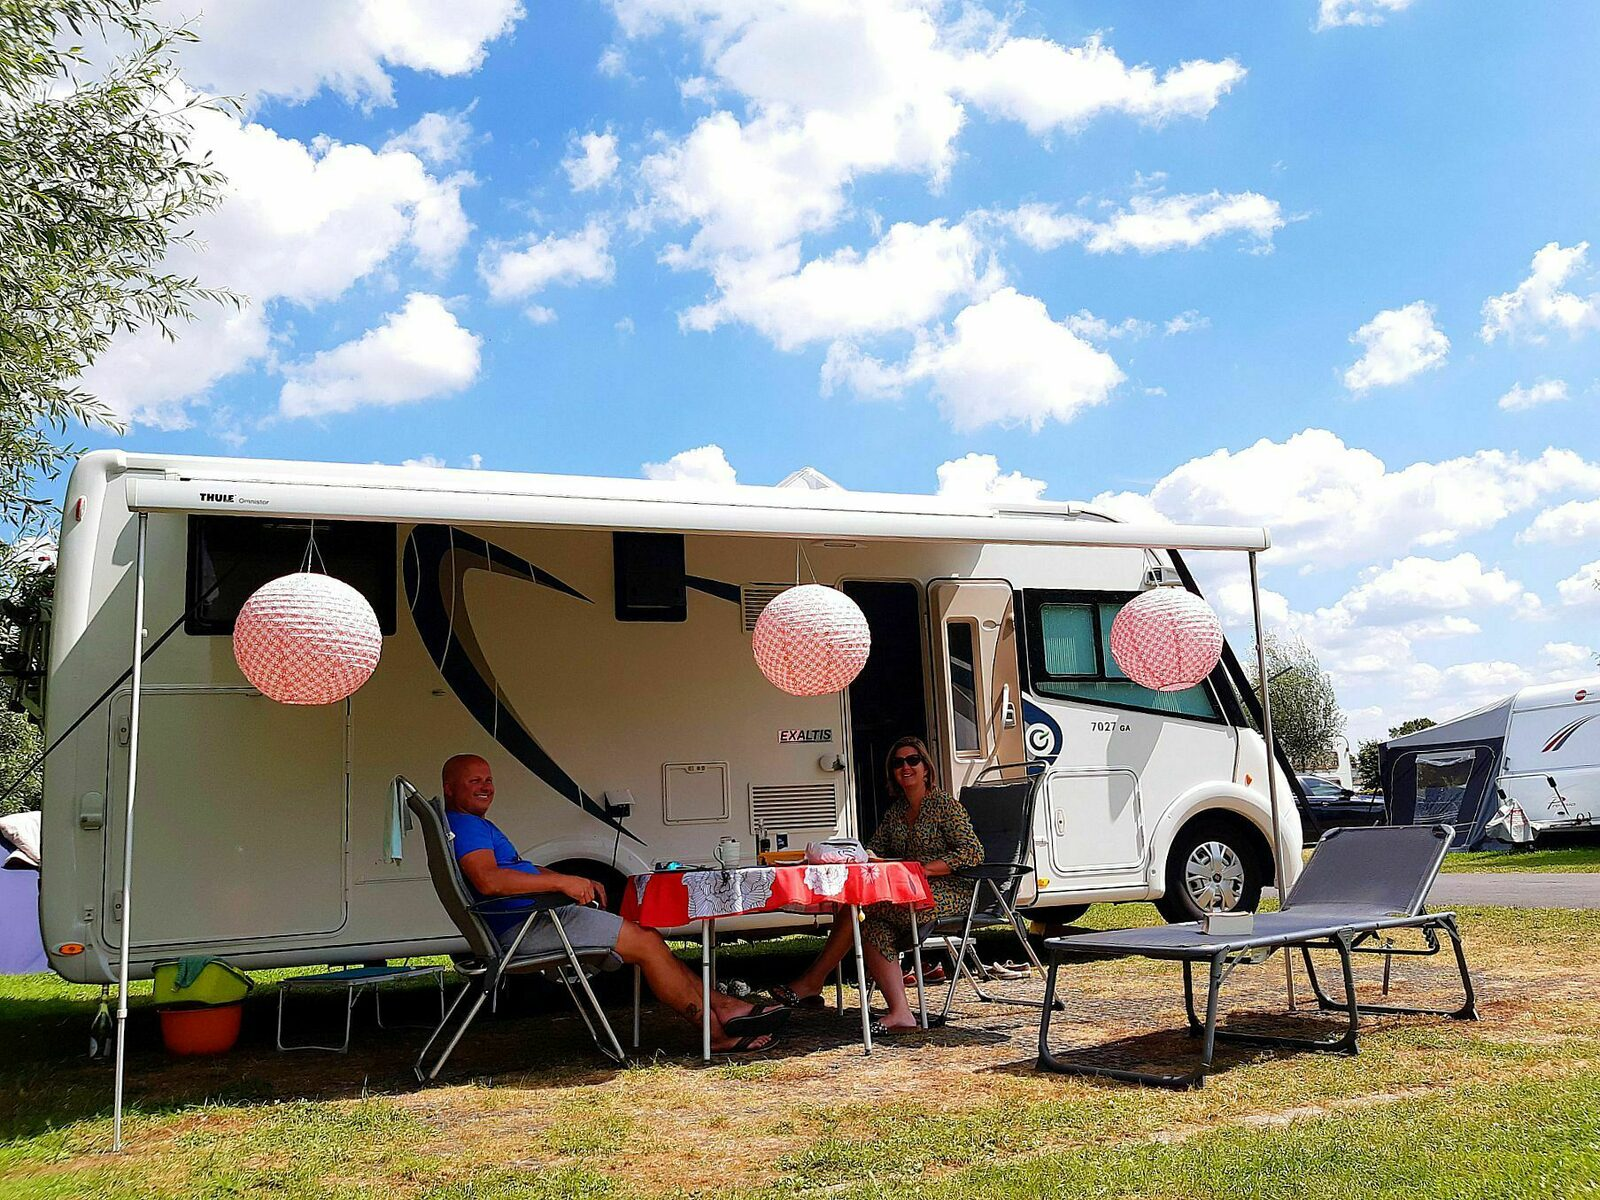 Camperplaats XL - 150 m²